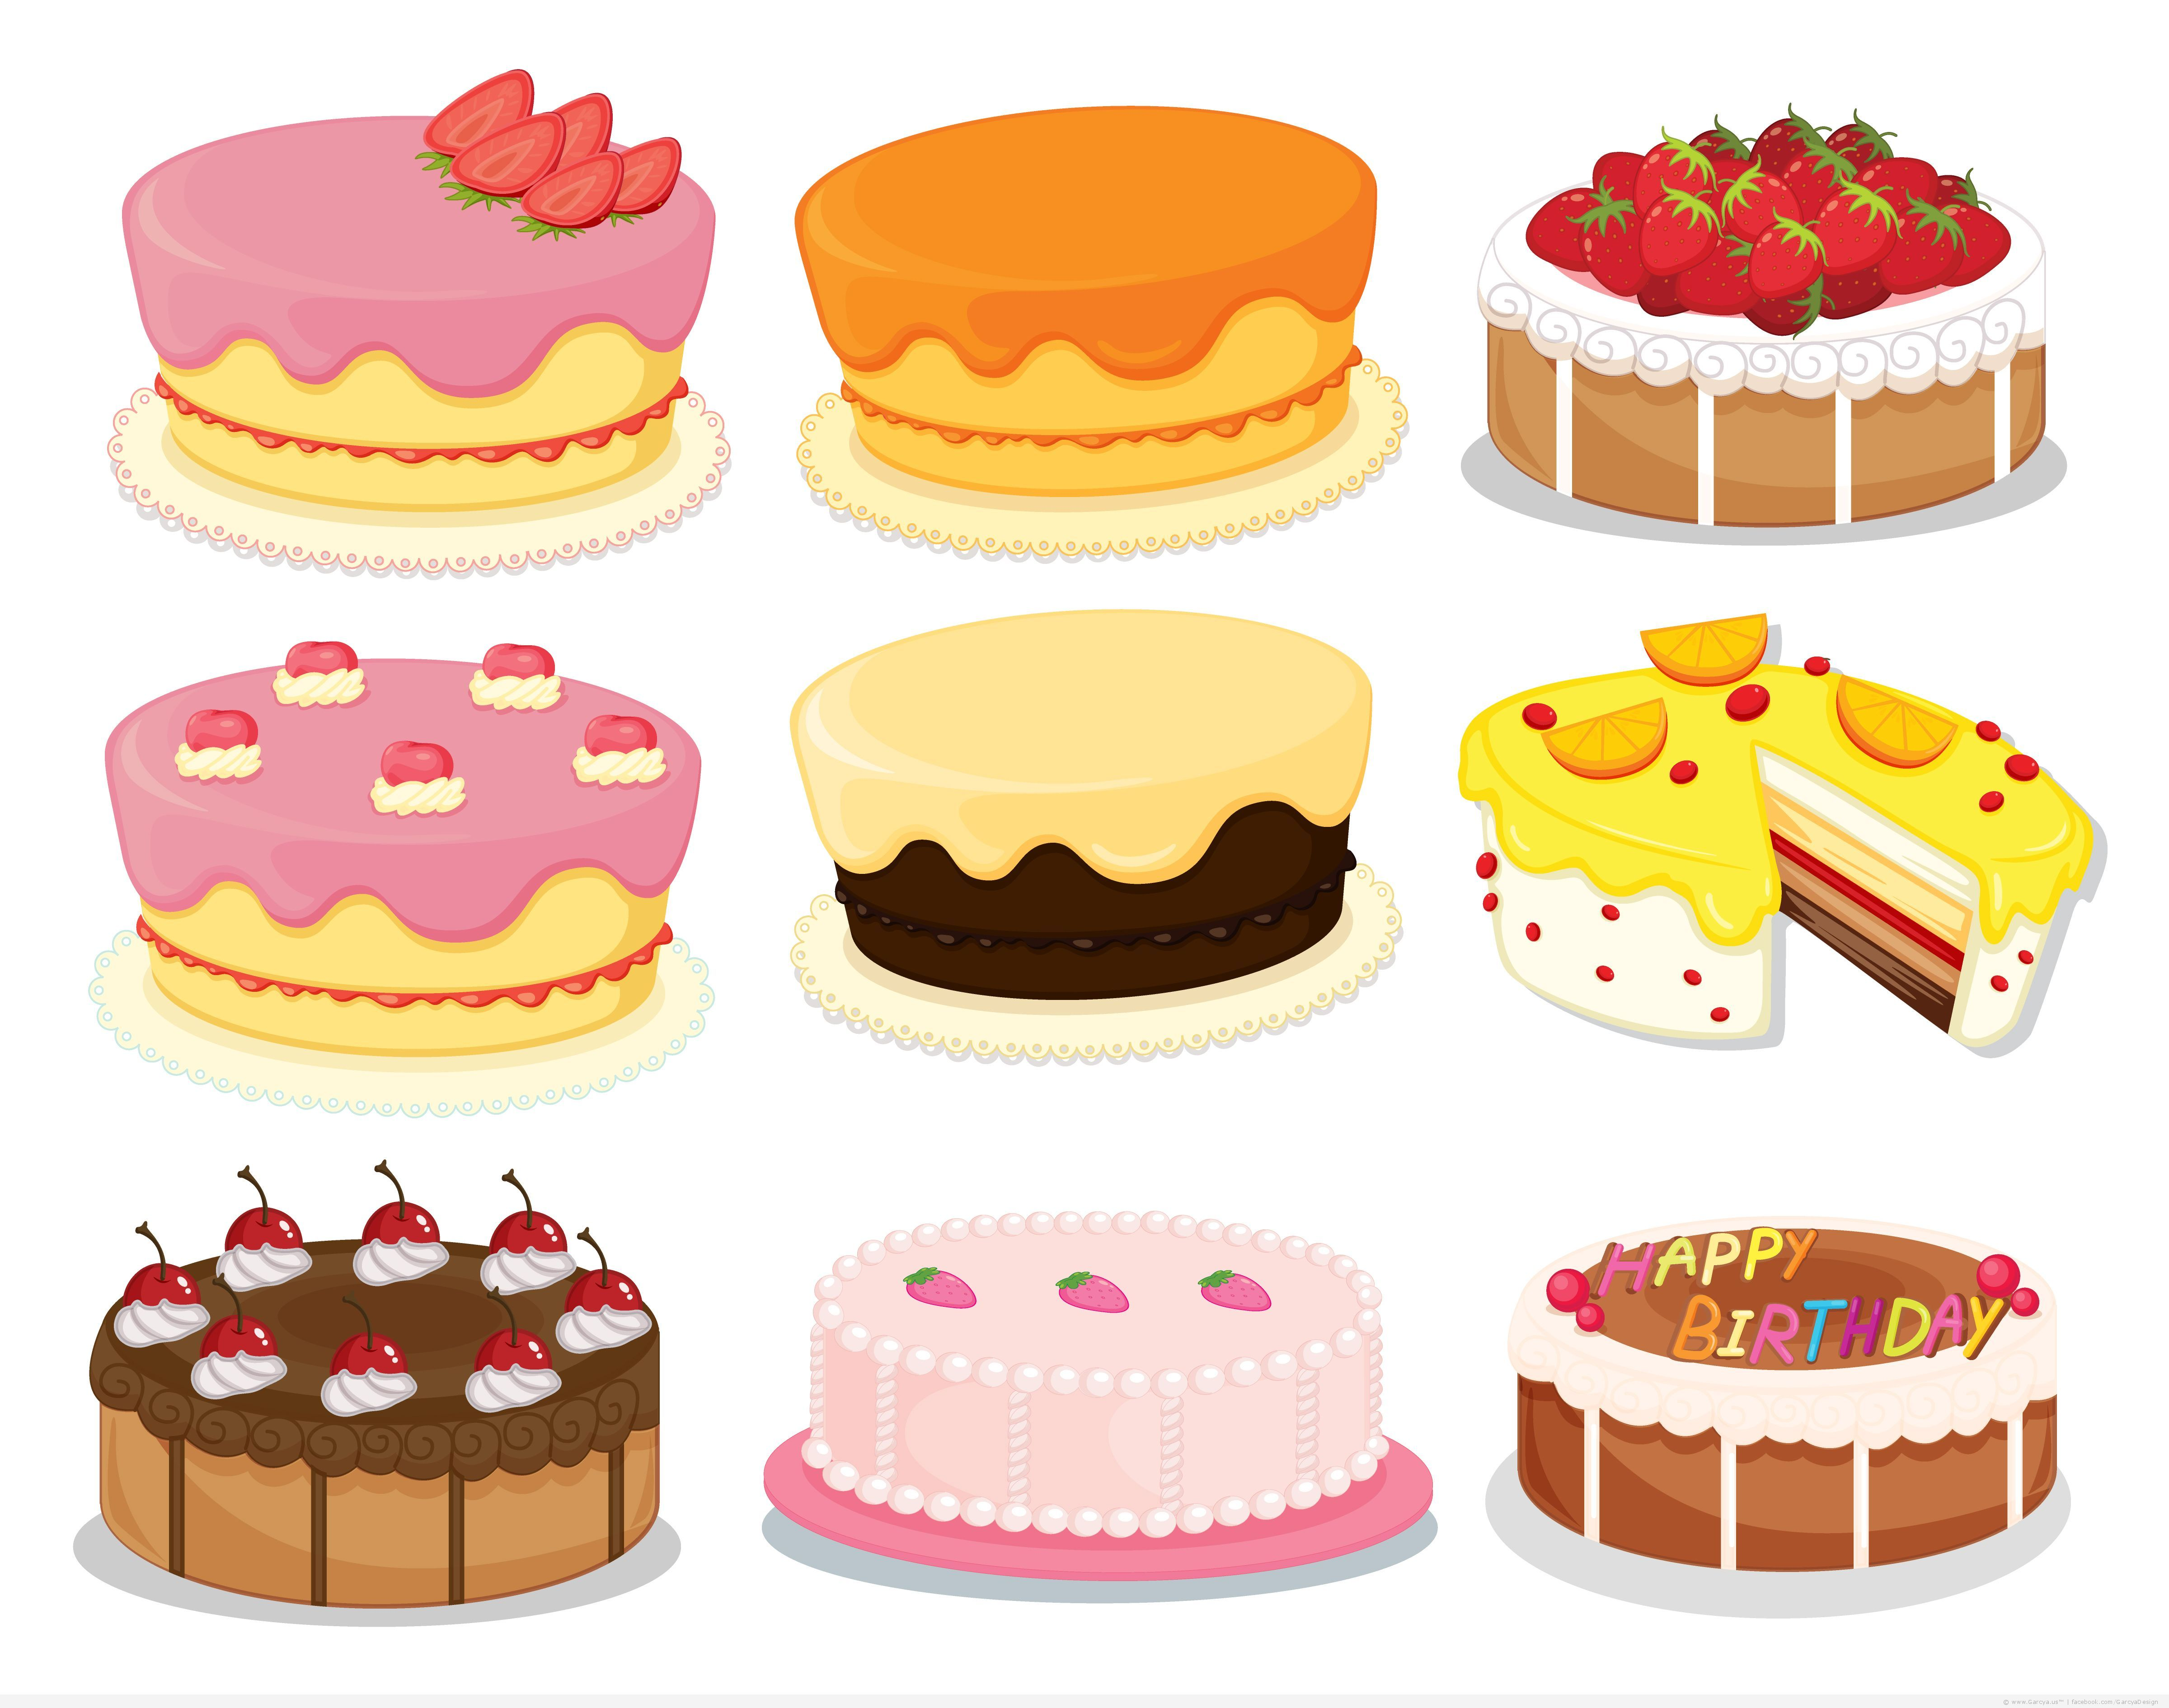 Vector Cakes And Sweets Free Download Cake Clipart Cake Flavors Types Of Cake Flavors